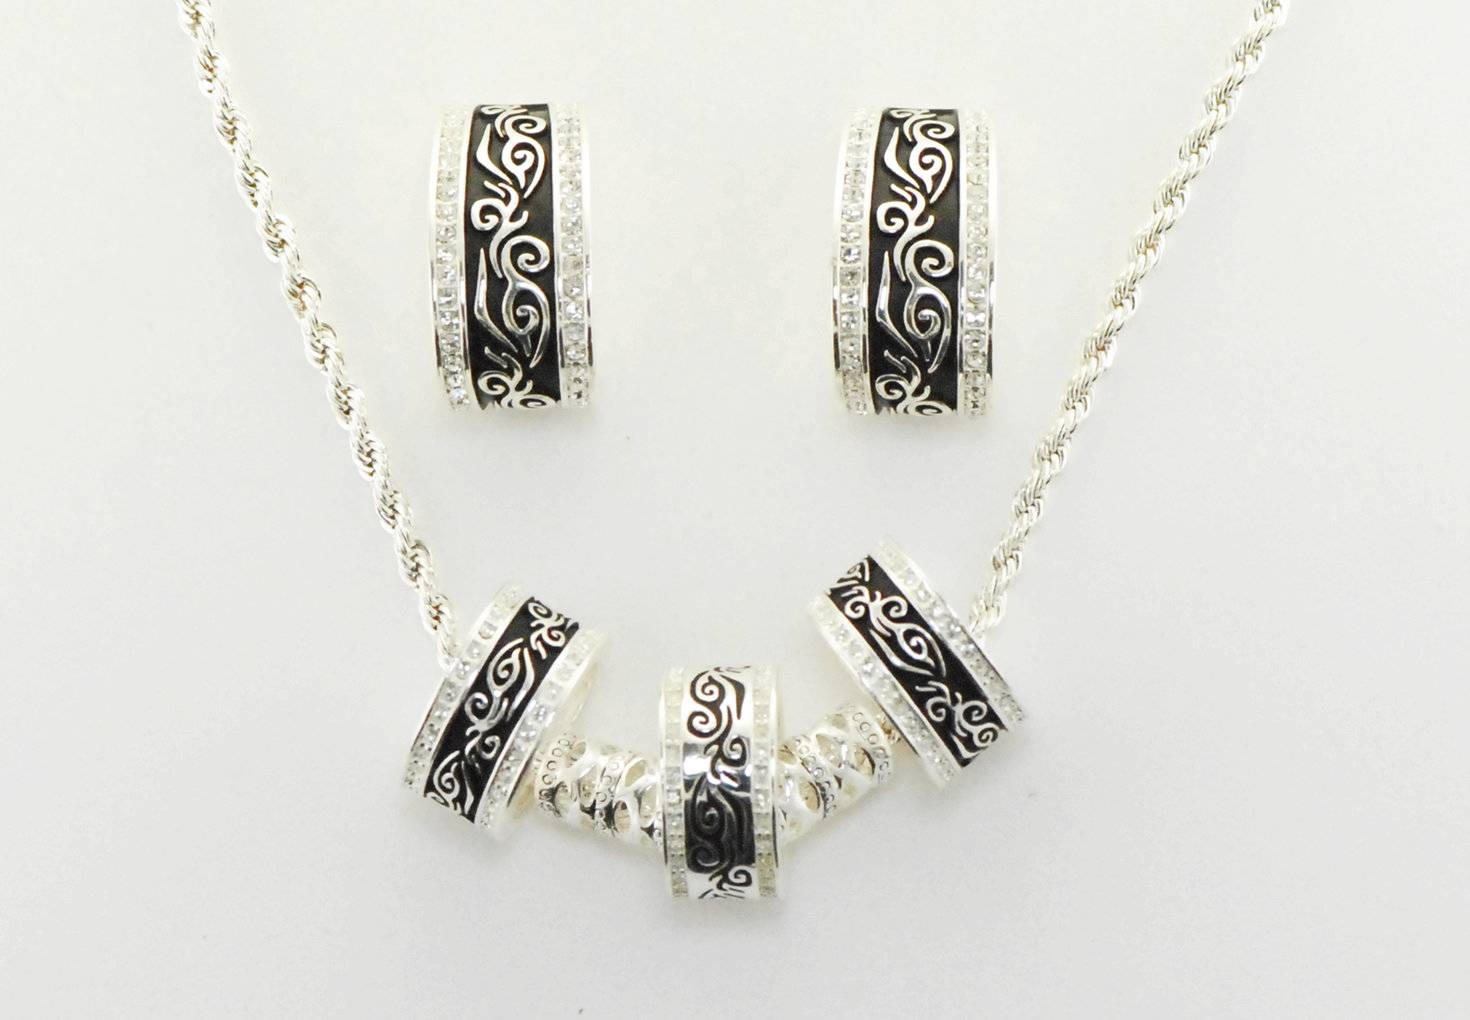 Western Edge Jewelry 3 Ring Filigree Crystal Jewelry Set